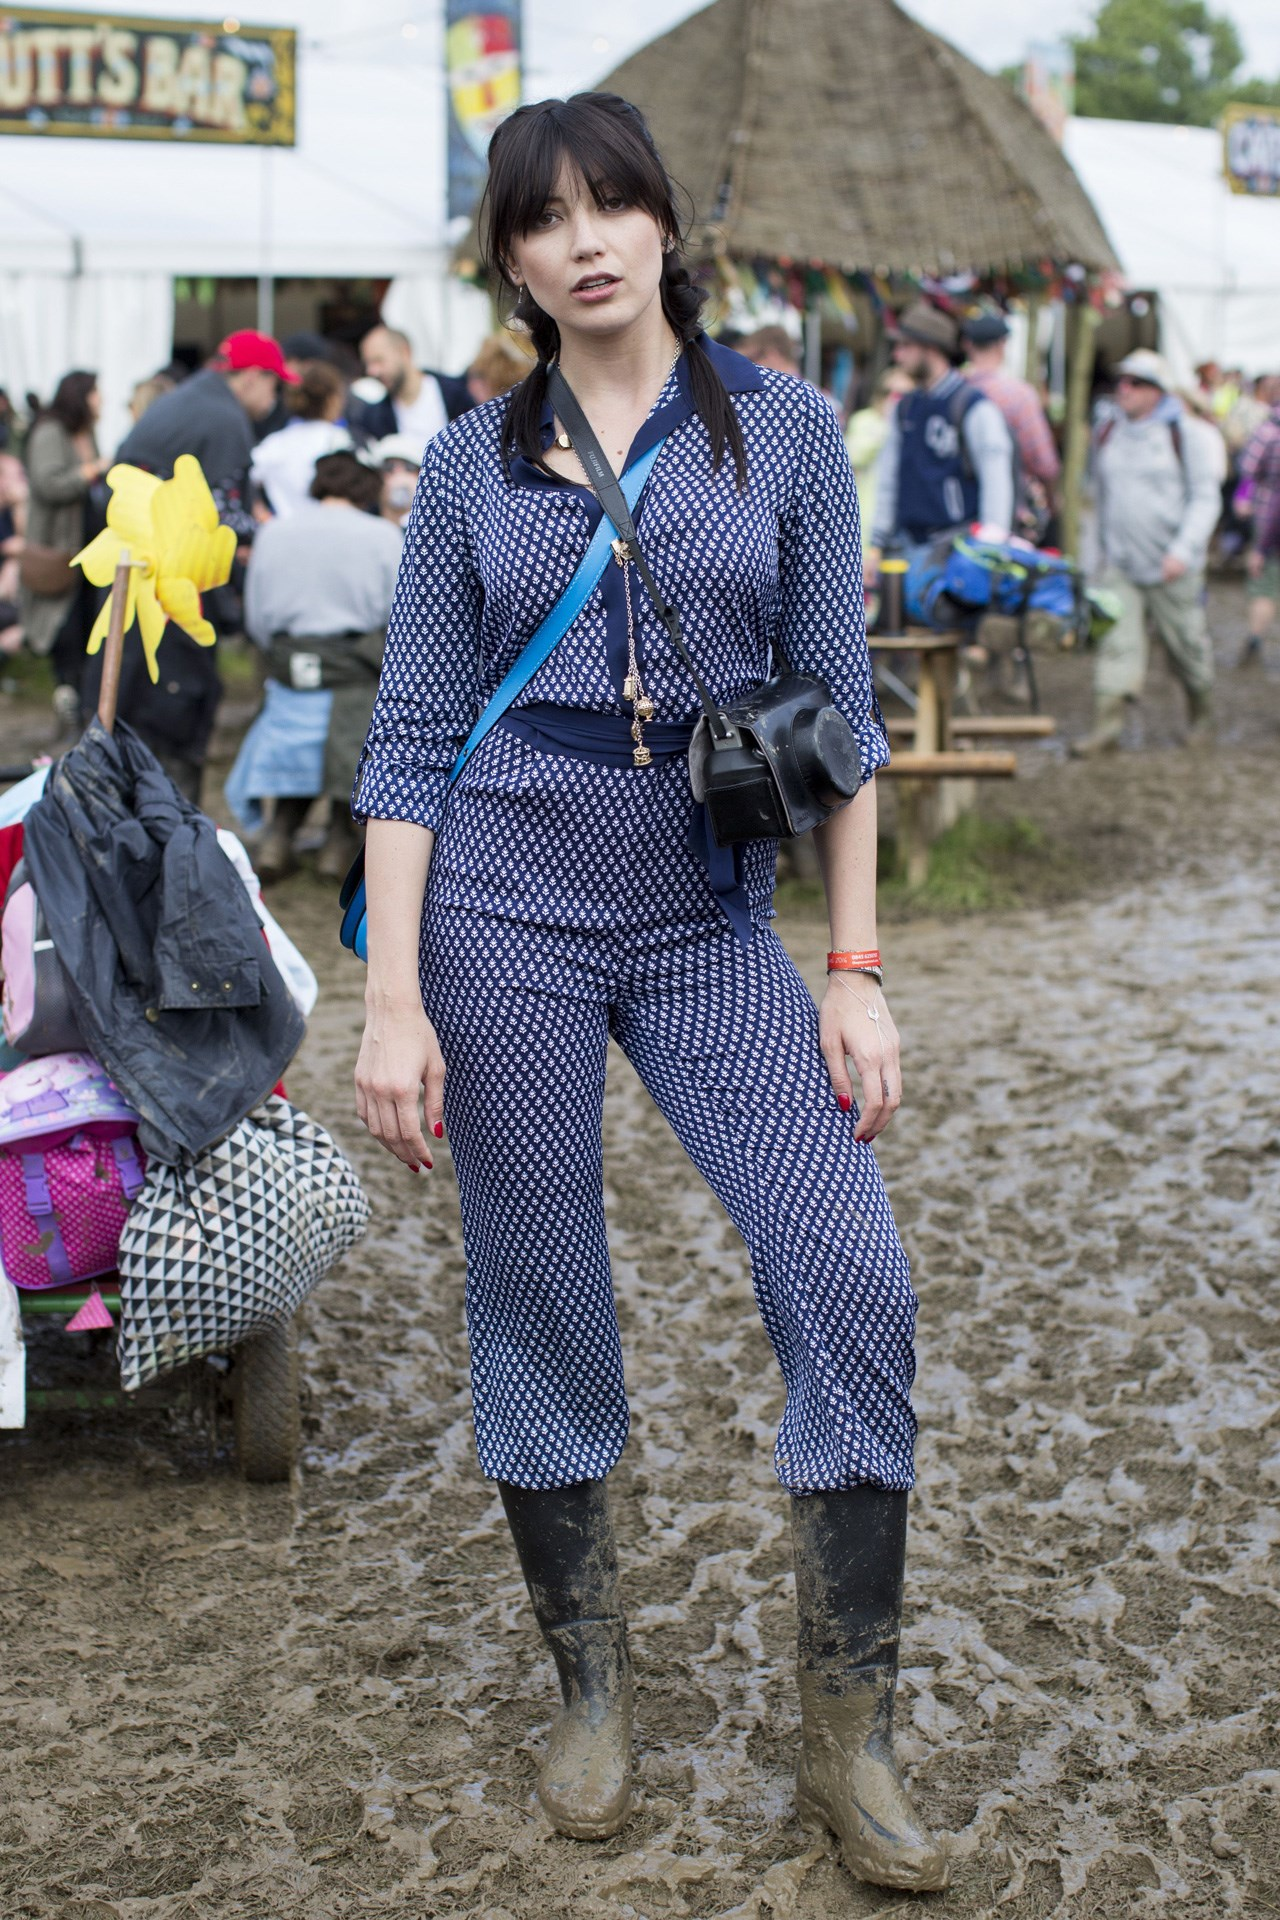 Daisy Lowe in an amazing blue printed two-piece. Everything about this look is a YES